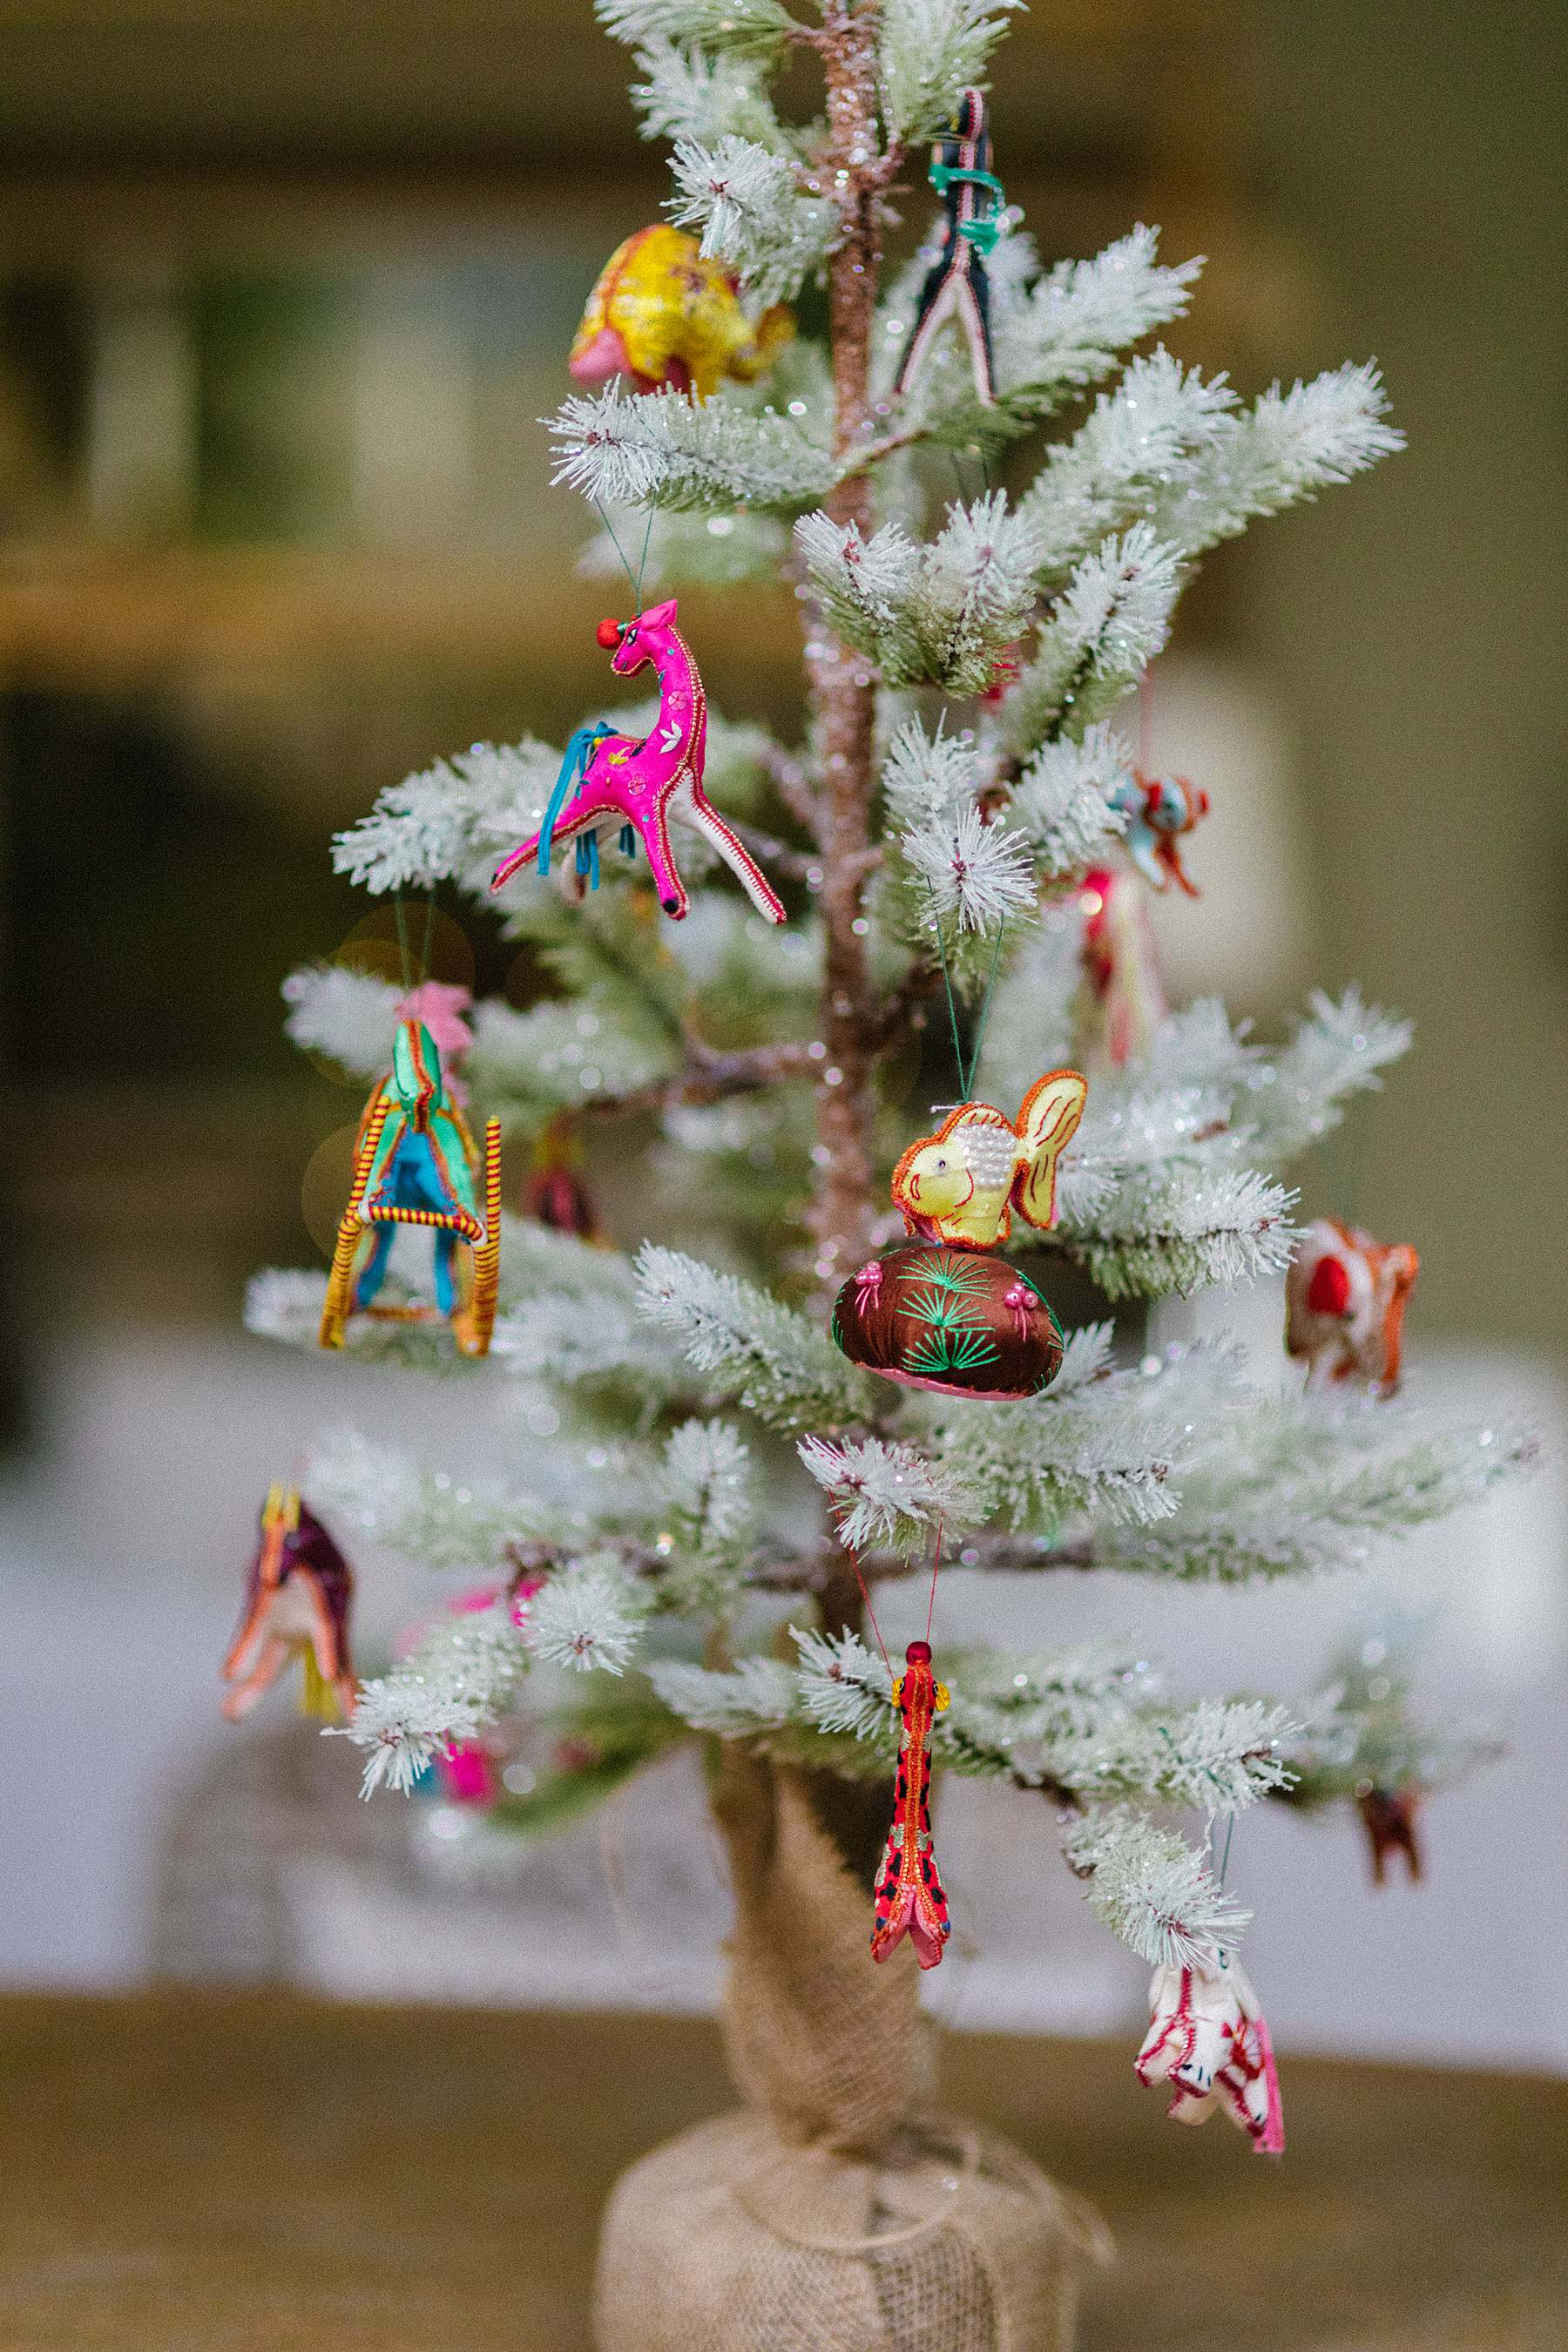 tabletop tree from Anthropologie featuring Chinese ornaments